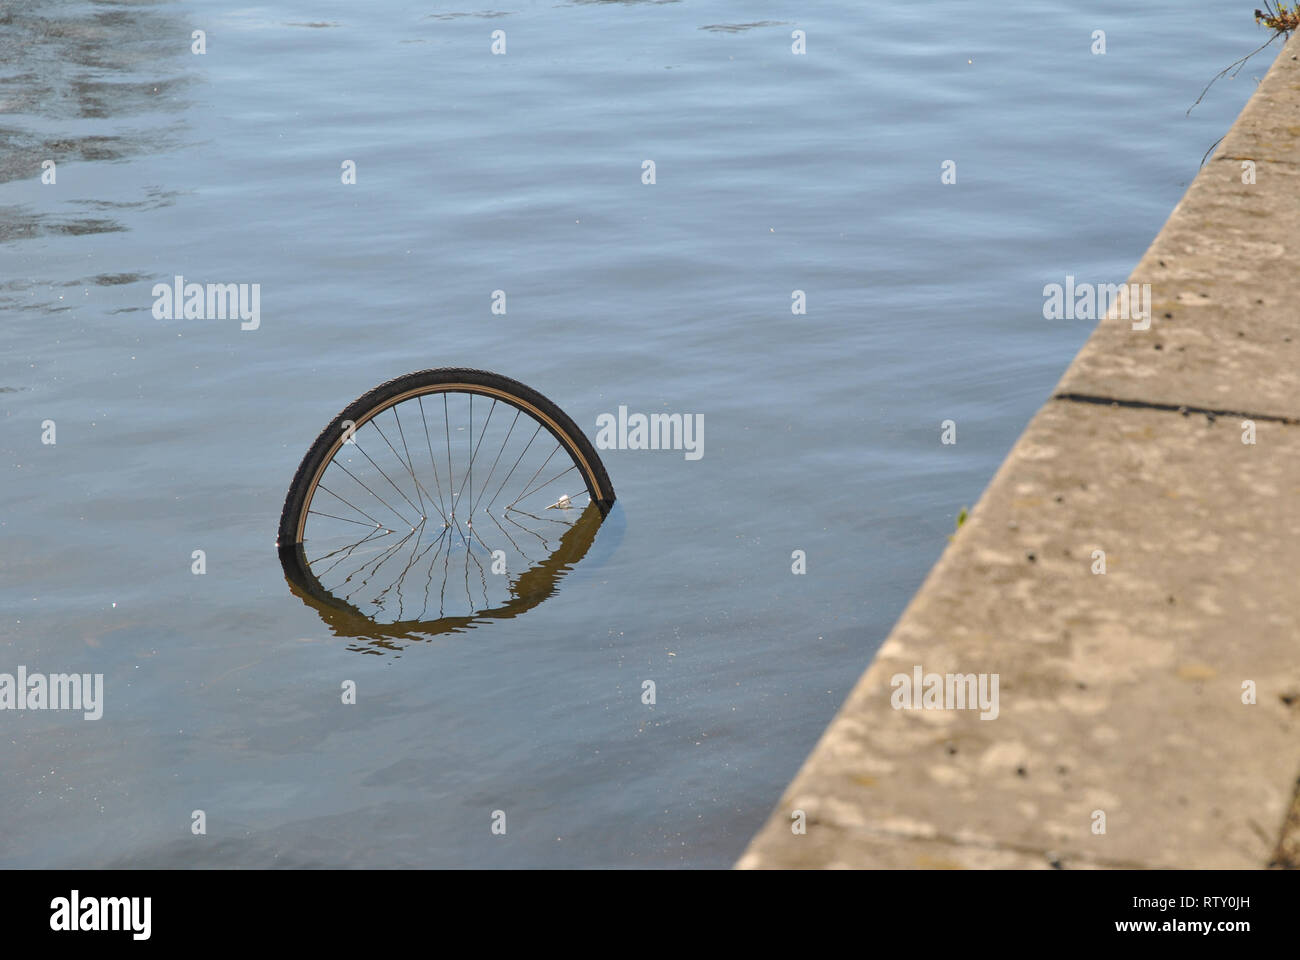 The wheel of a bicycle dumped in the river is  just visible above the waterline - Stock Image